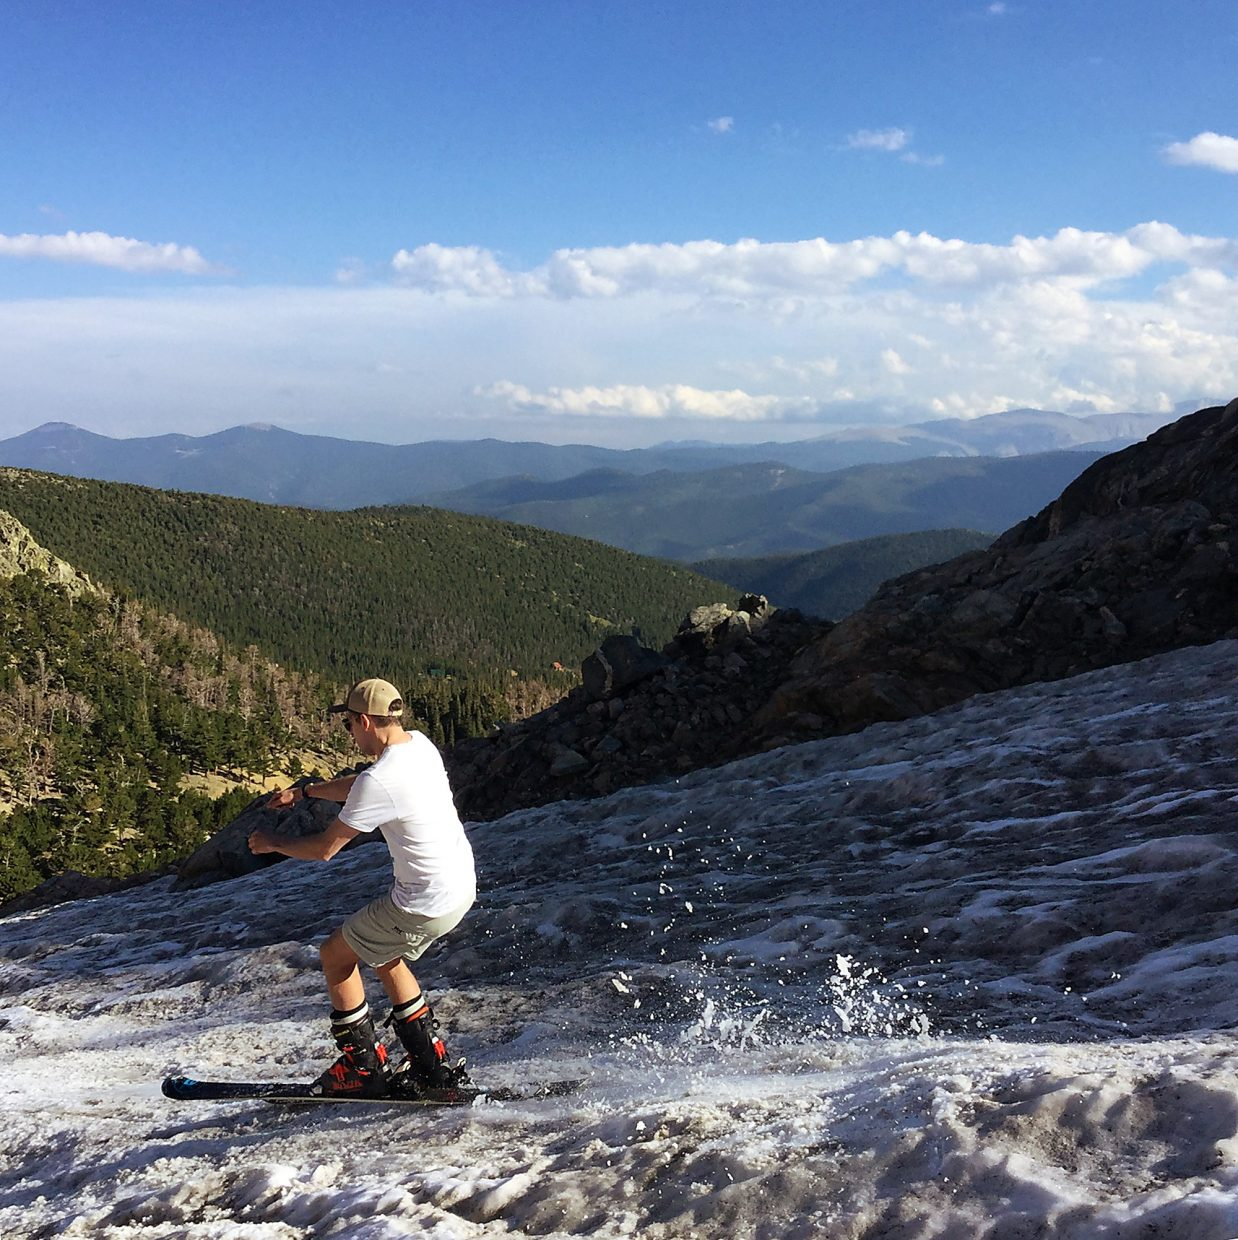 The author skiing in late August on St. Mary's Glacier outside of Georgetown, CO.